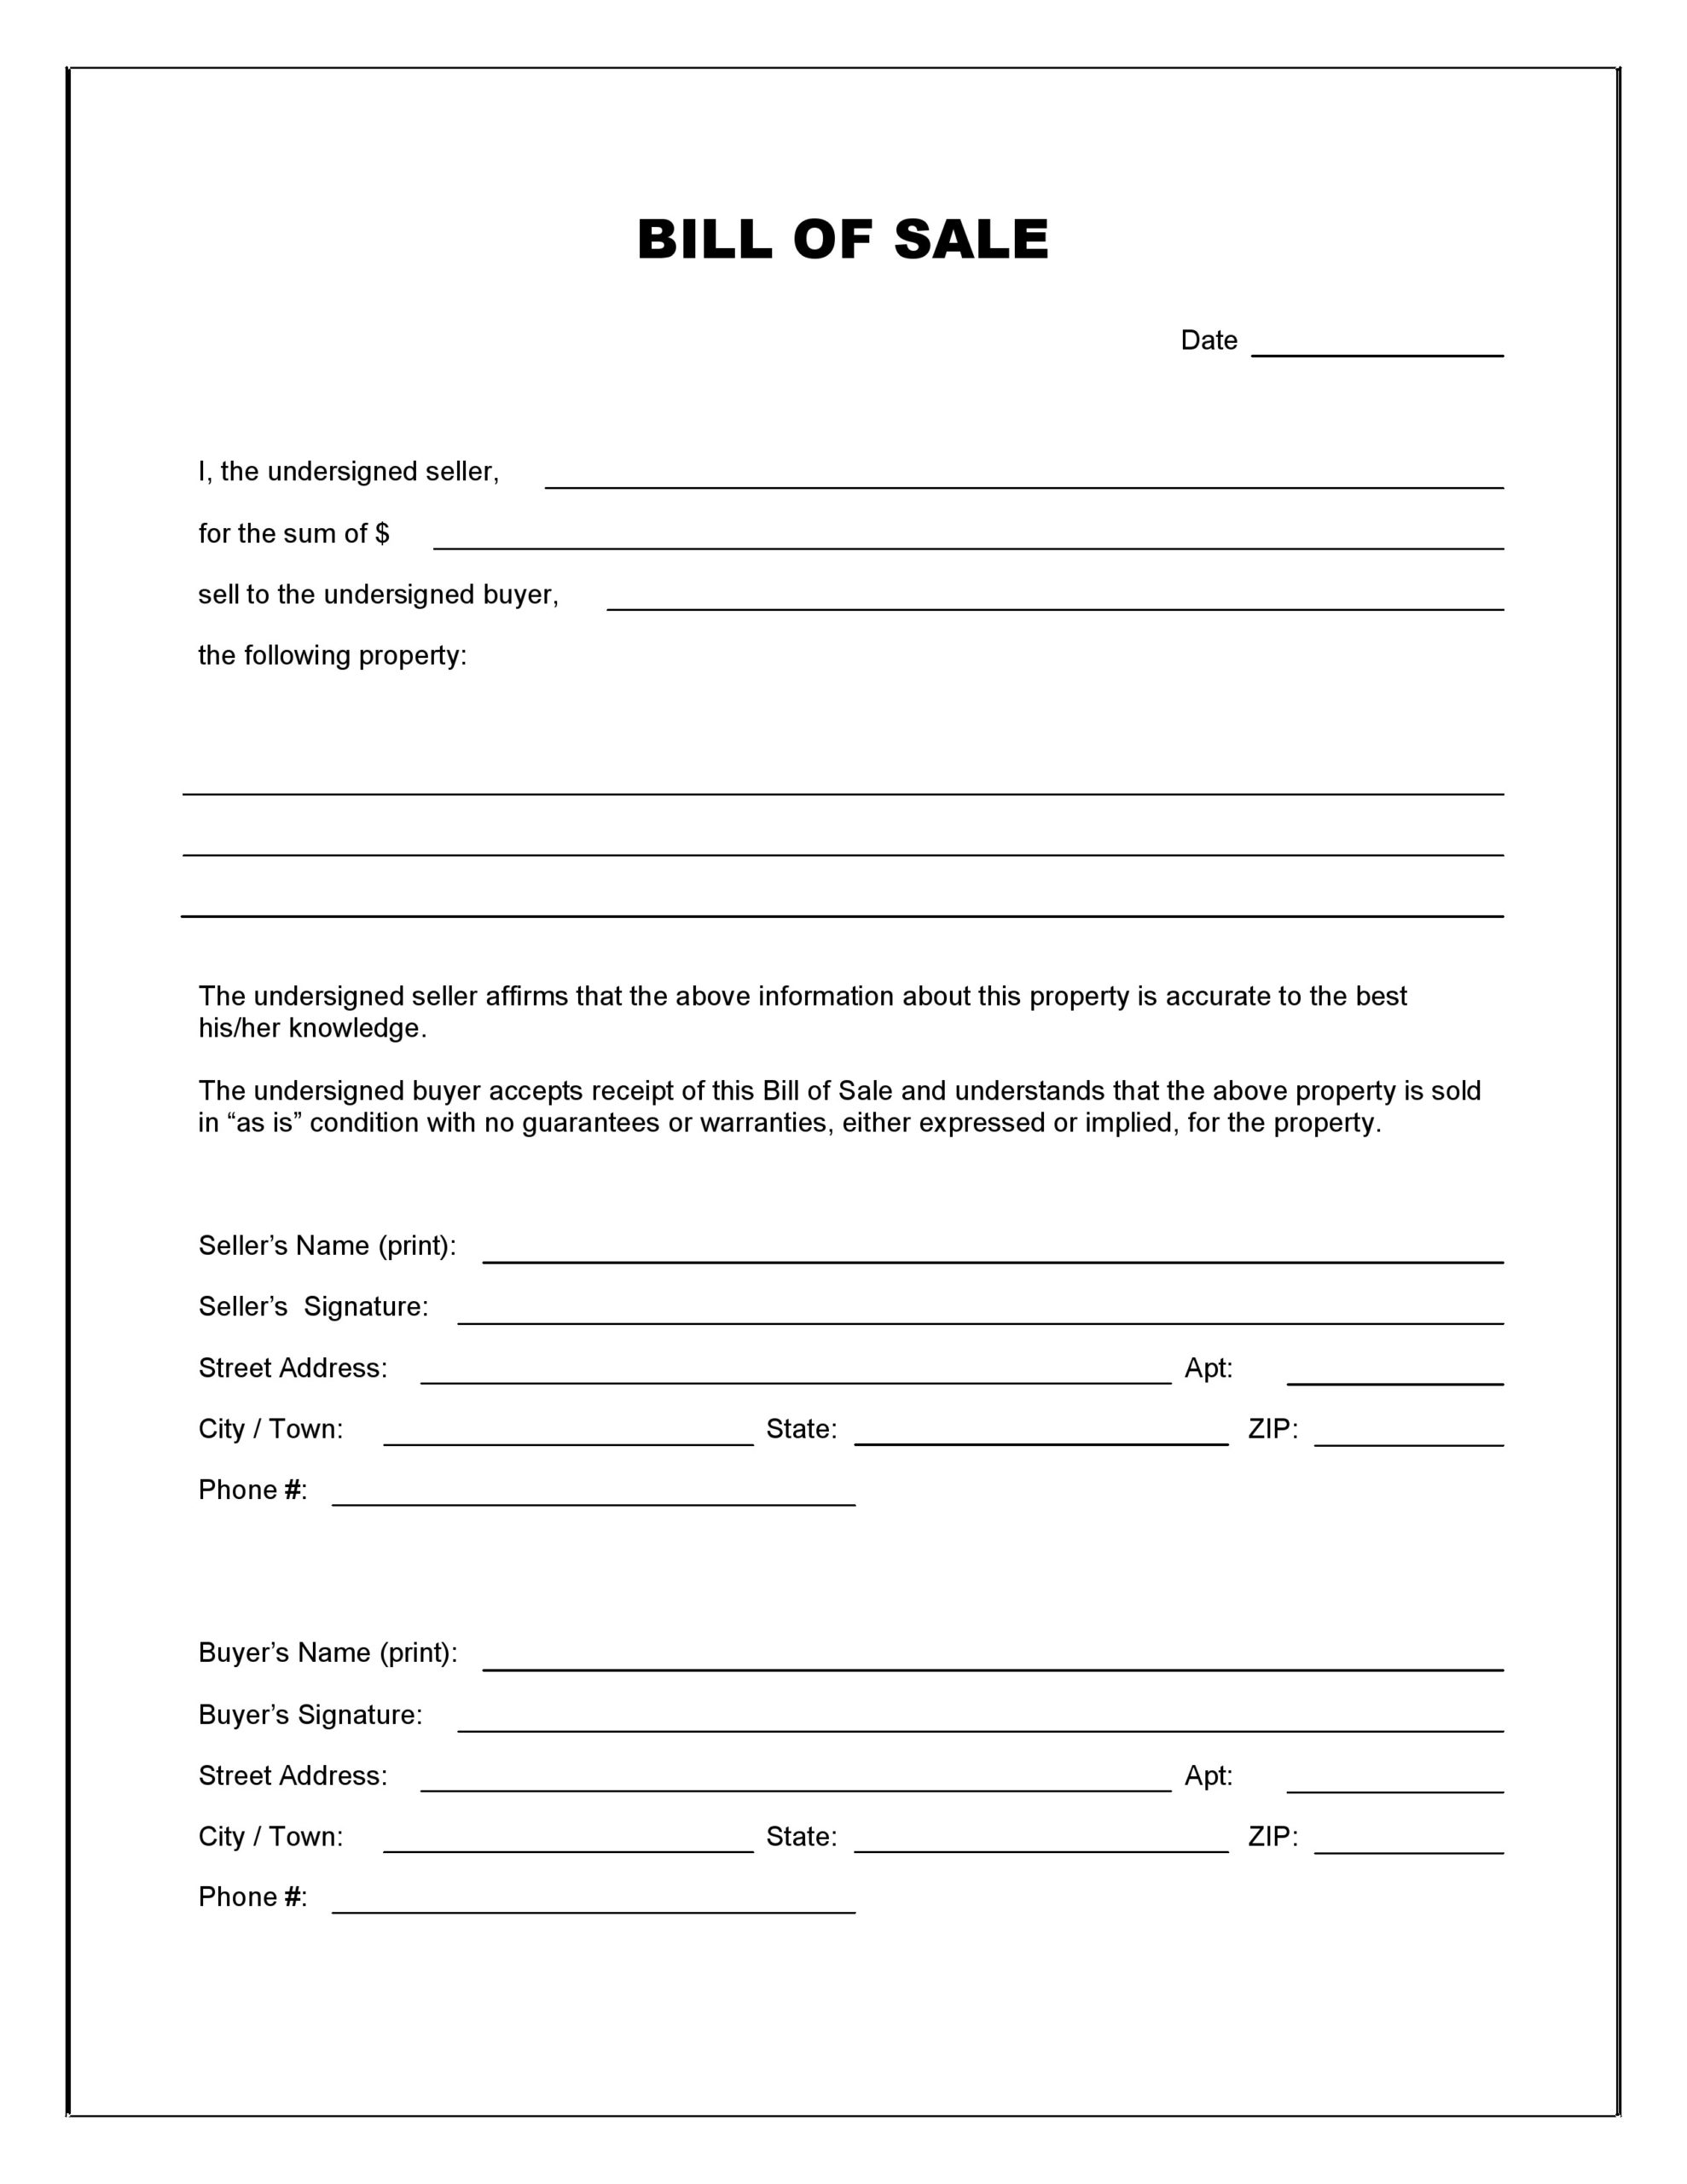 Free Blank Bill Of Sale Form   Pdf   Word   Do It Yourself Forms